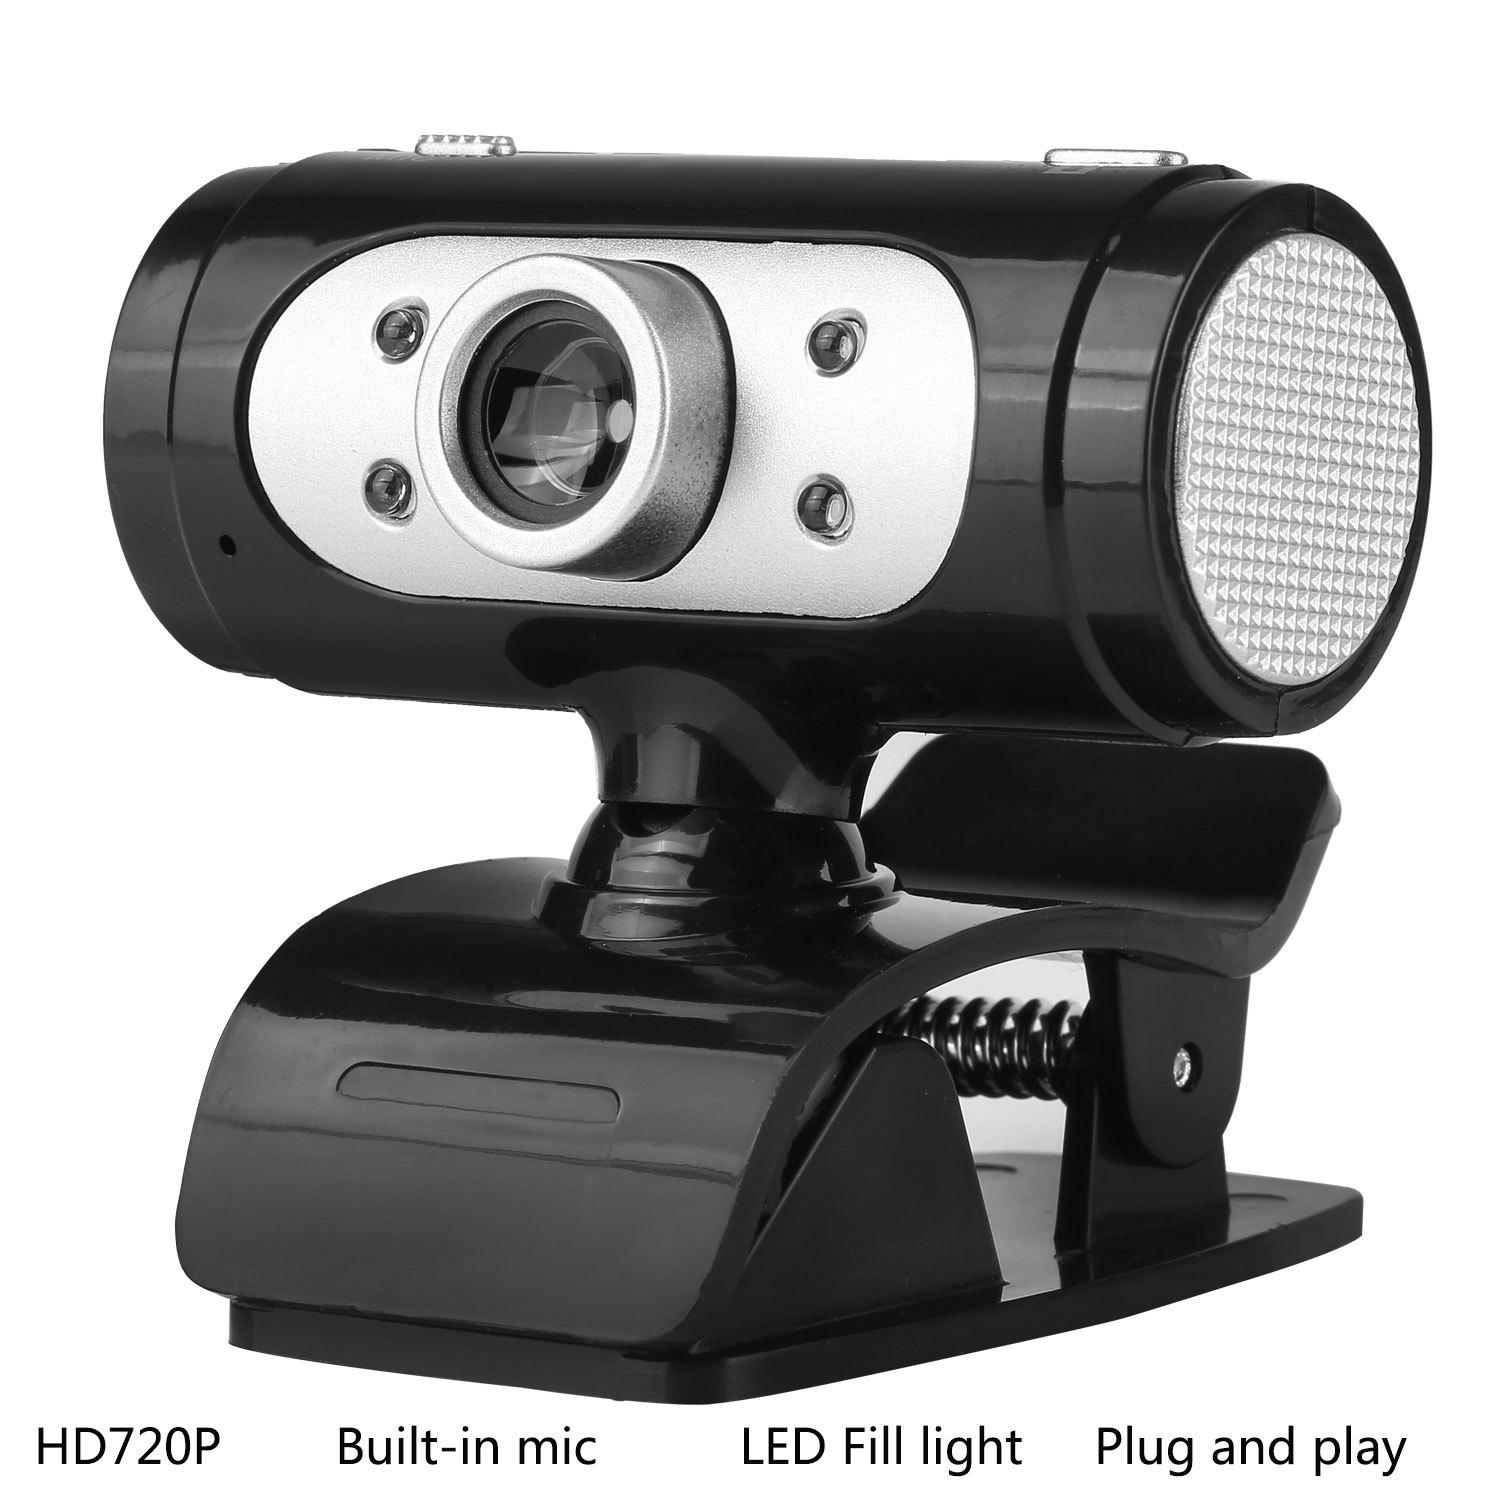 HD 720P USB Webcam Rotatable PC Computer Camera Video Calling and Recording with Noise-canceling Mic Clip on Style Plug and Play